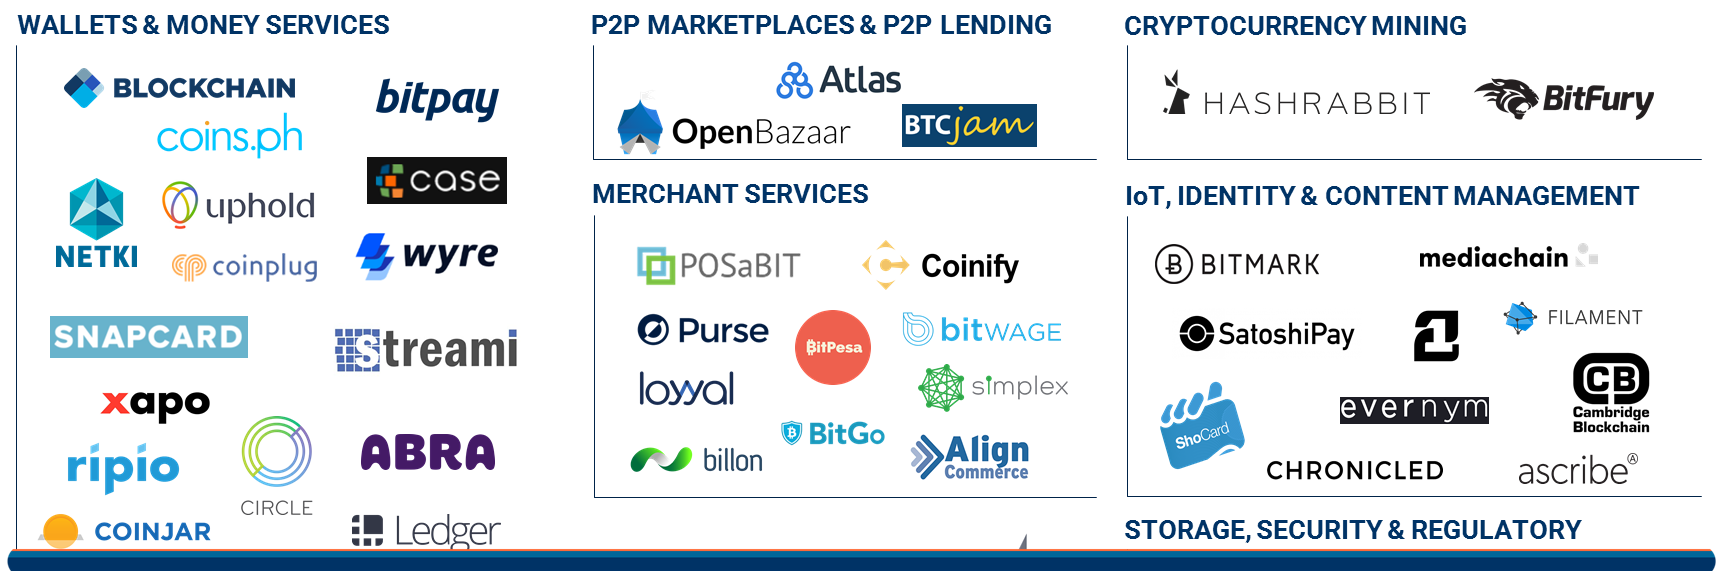 2017.02.07 Blockchain Market Map Featured PNG v5